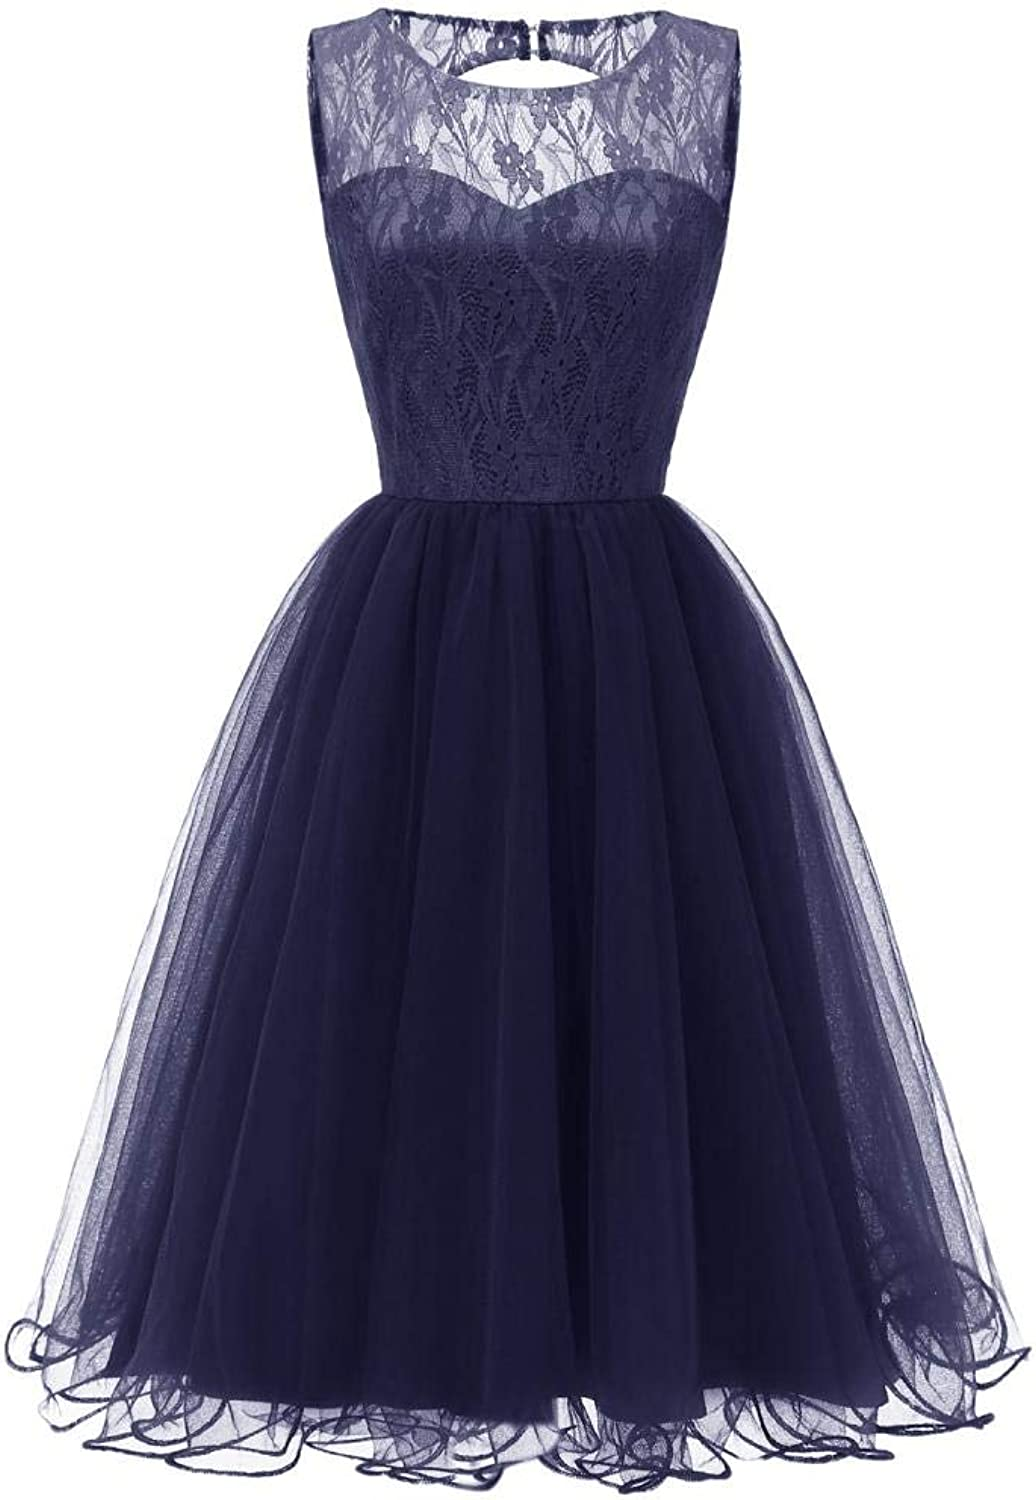 EverBeauty Juniors Vintage Sleeveless Lace Tulle Party Dress Short Aline Prom Homecoming Dress